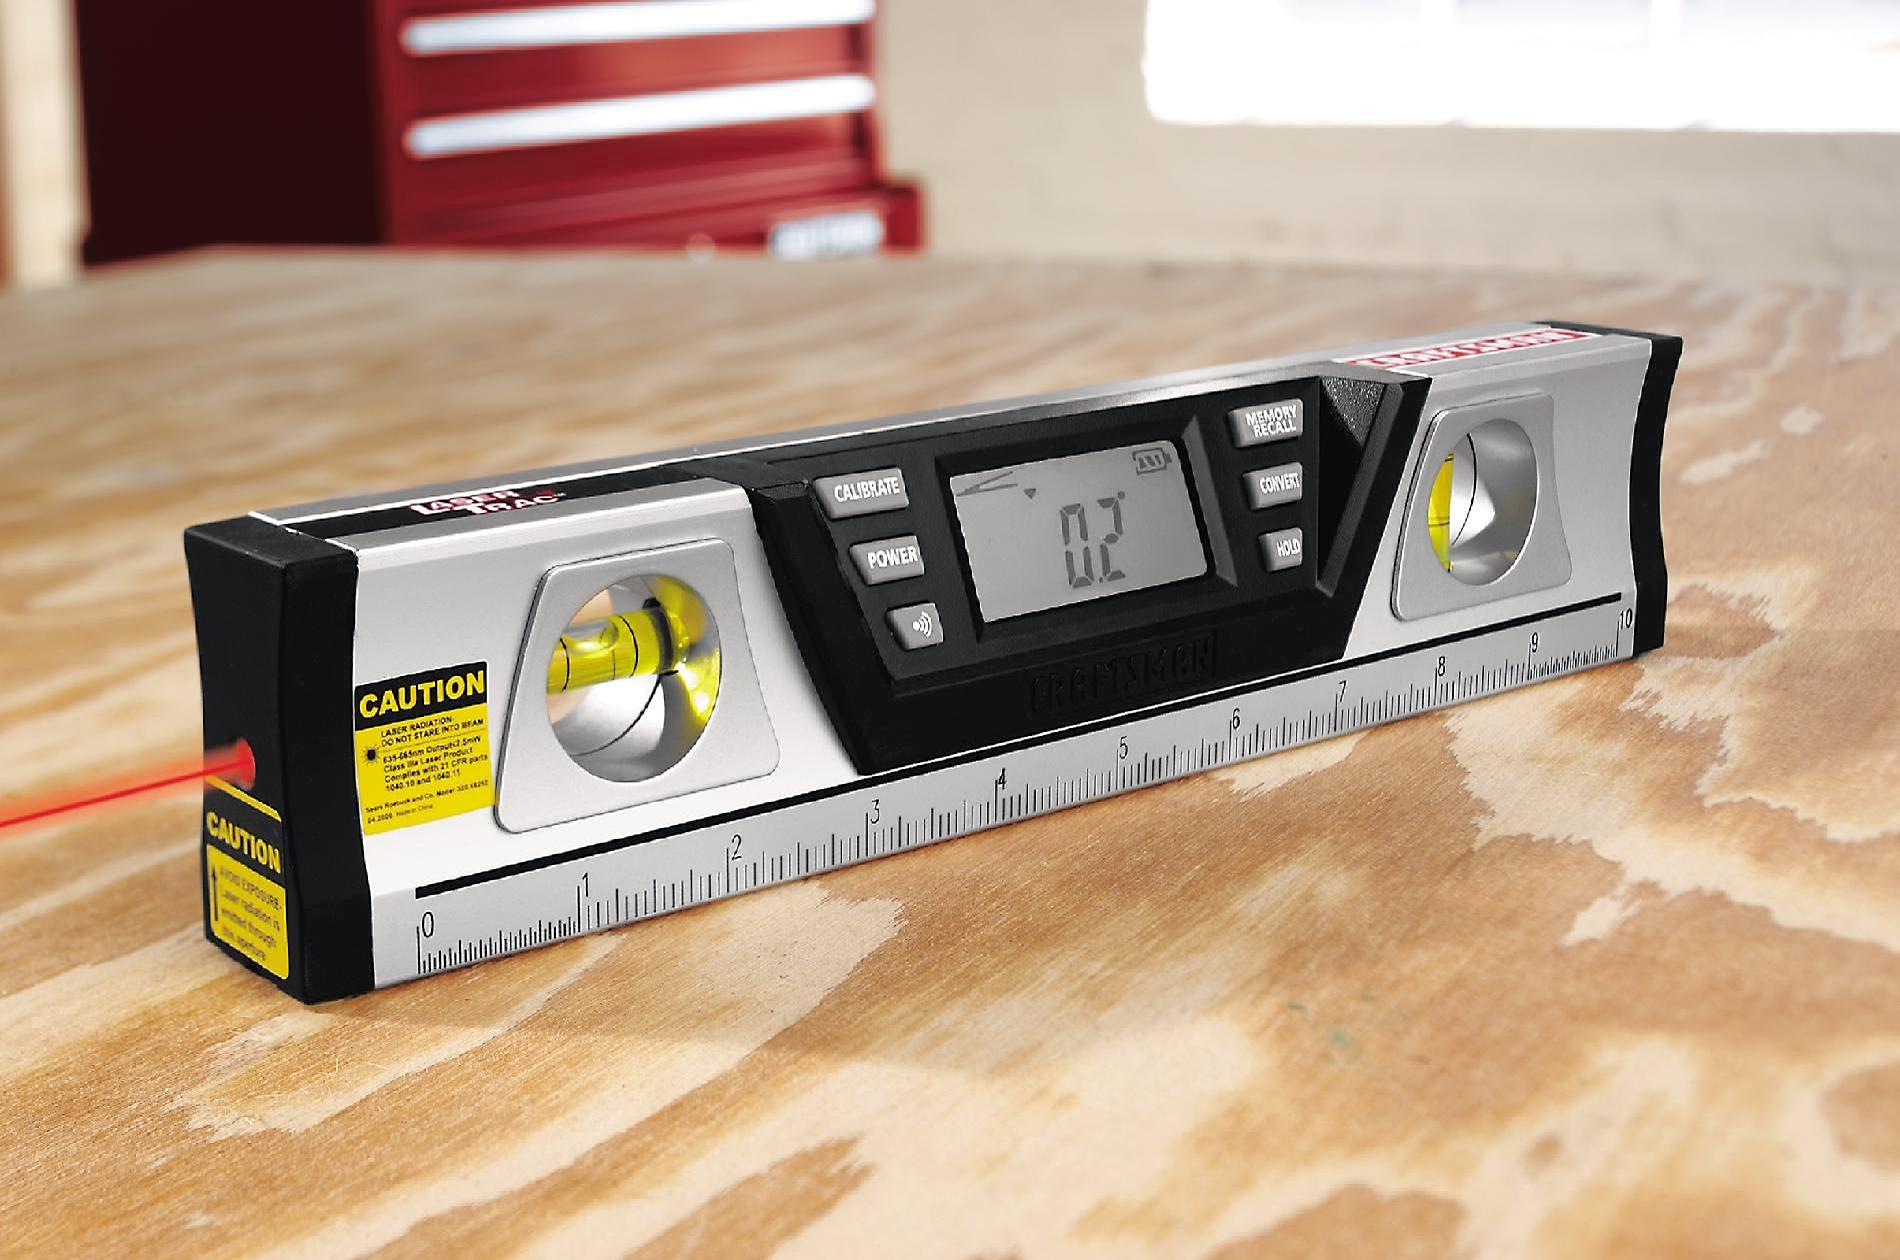 Craftsman 10 in. Digital LaserTrac® Level